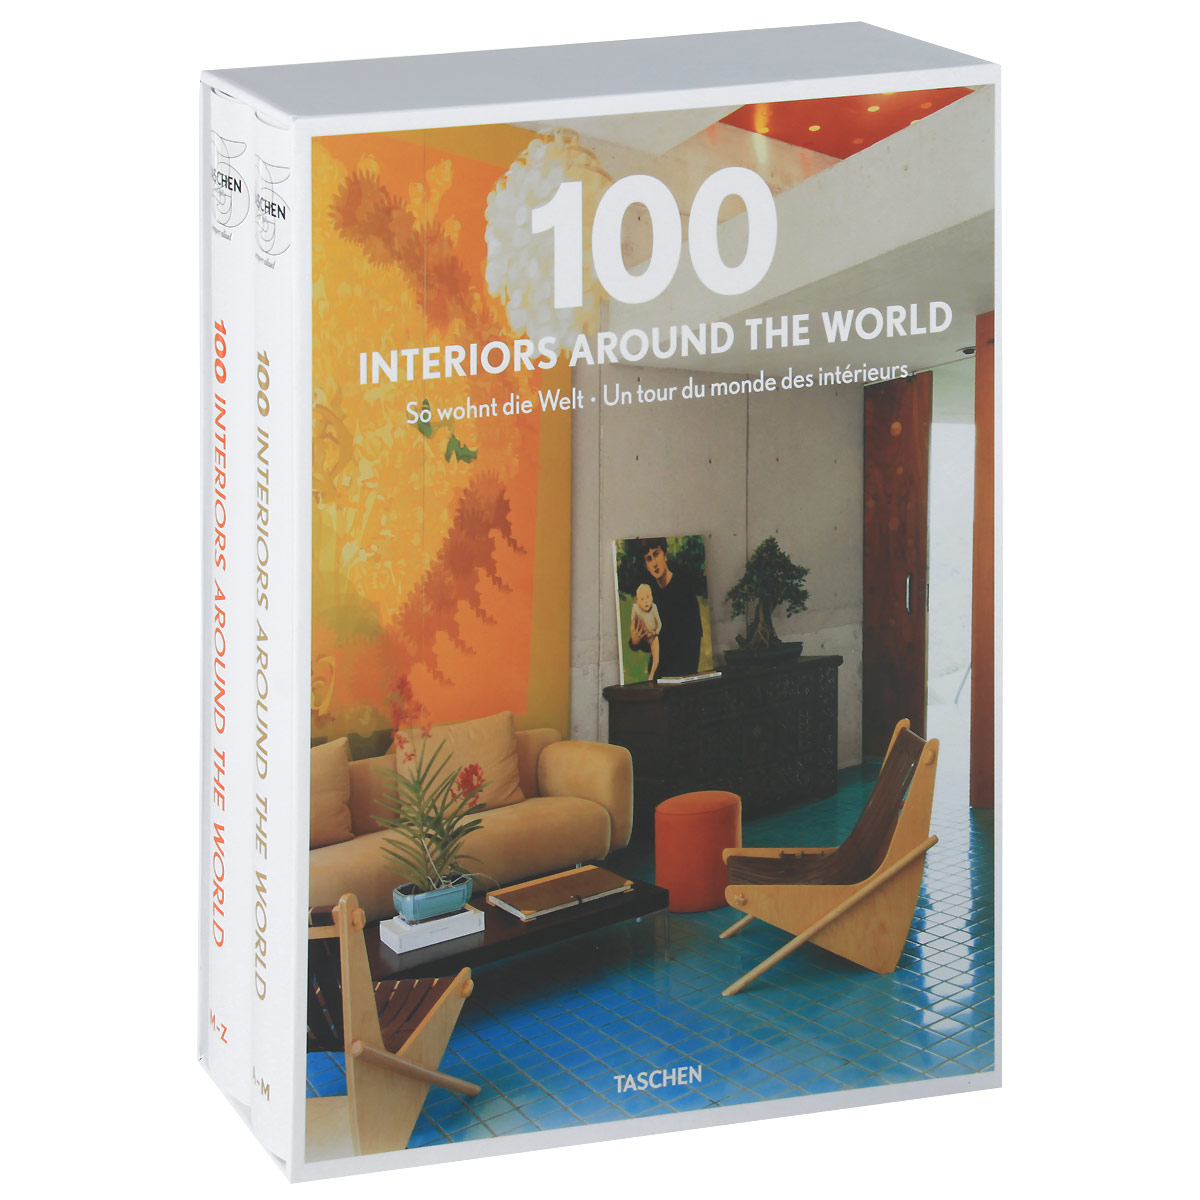 100 Interiors Around the World / So wohnt die Welt / Un tour du monde des interieurs (комплект из 2 книг) 2013 g dragon world tour one of a kind the final in seoul world tour [ booklet 3 photocards] release date 2014 2 12 kpop